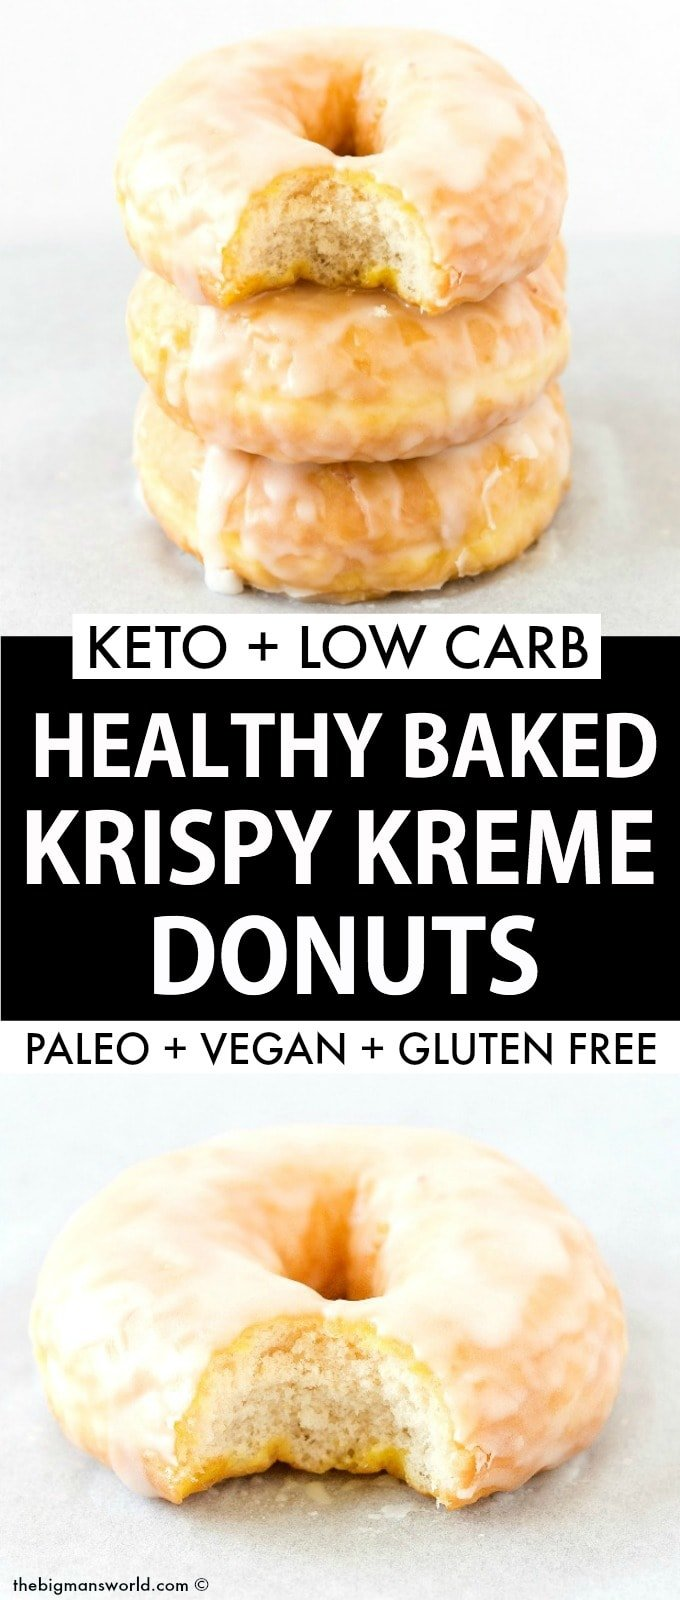 Healthy Paleo Vegan Baked Krispy Kreme Donuts Recipe topped with a sugar free glaze!